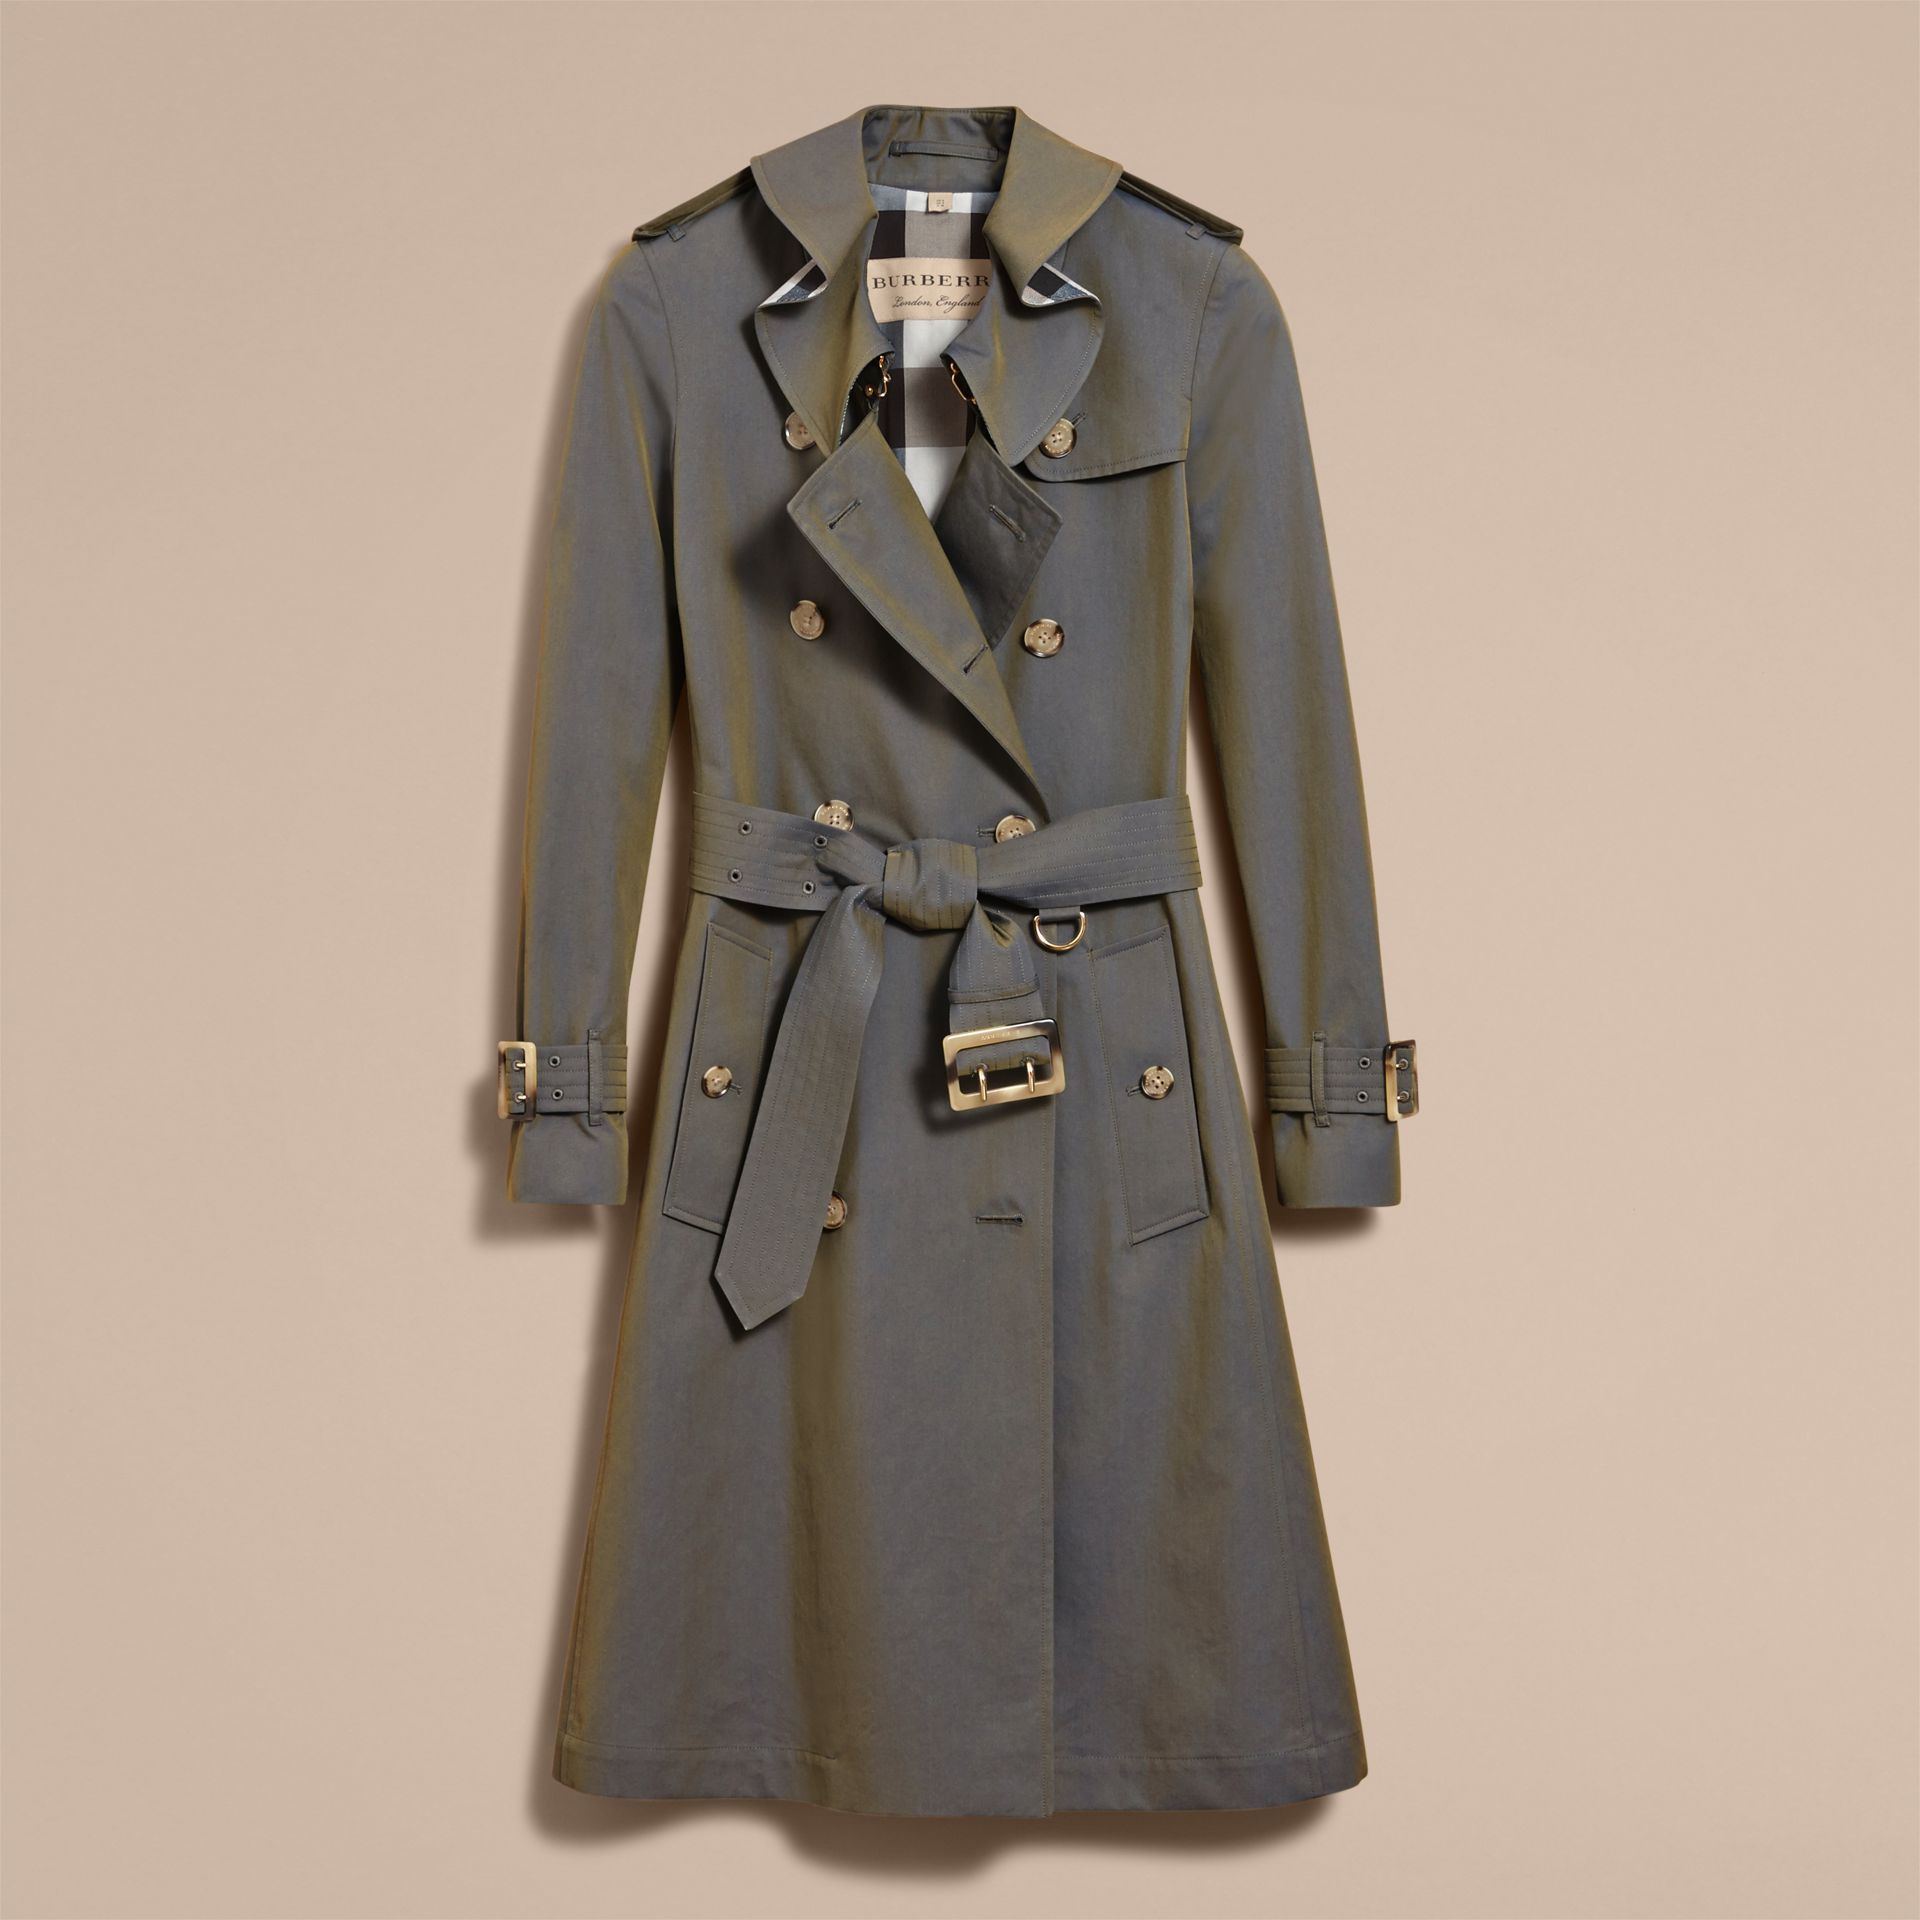 Tropical Gabardine Trench Coat with Ruffle Detail in Storm Blue - Women | Burberry Australia - gallery image 4